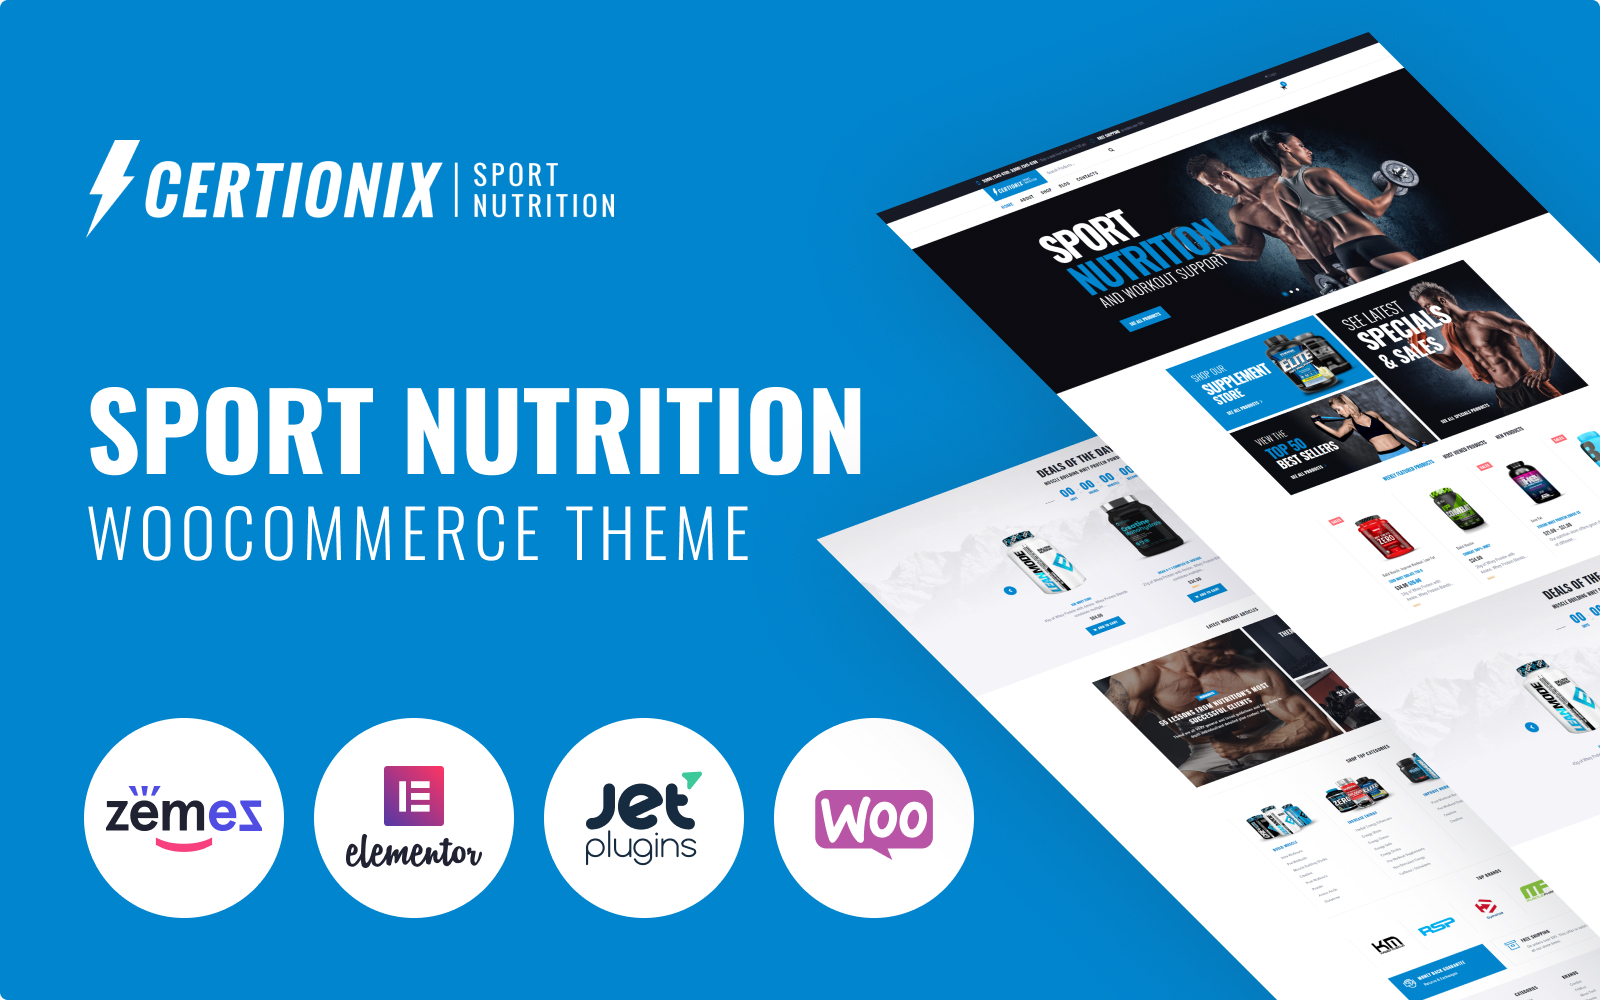 """Certionix - Sport Nutrition Website Template with Woocommerce and Elementor"" thème WooCommerce adaptatif #65870"